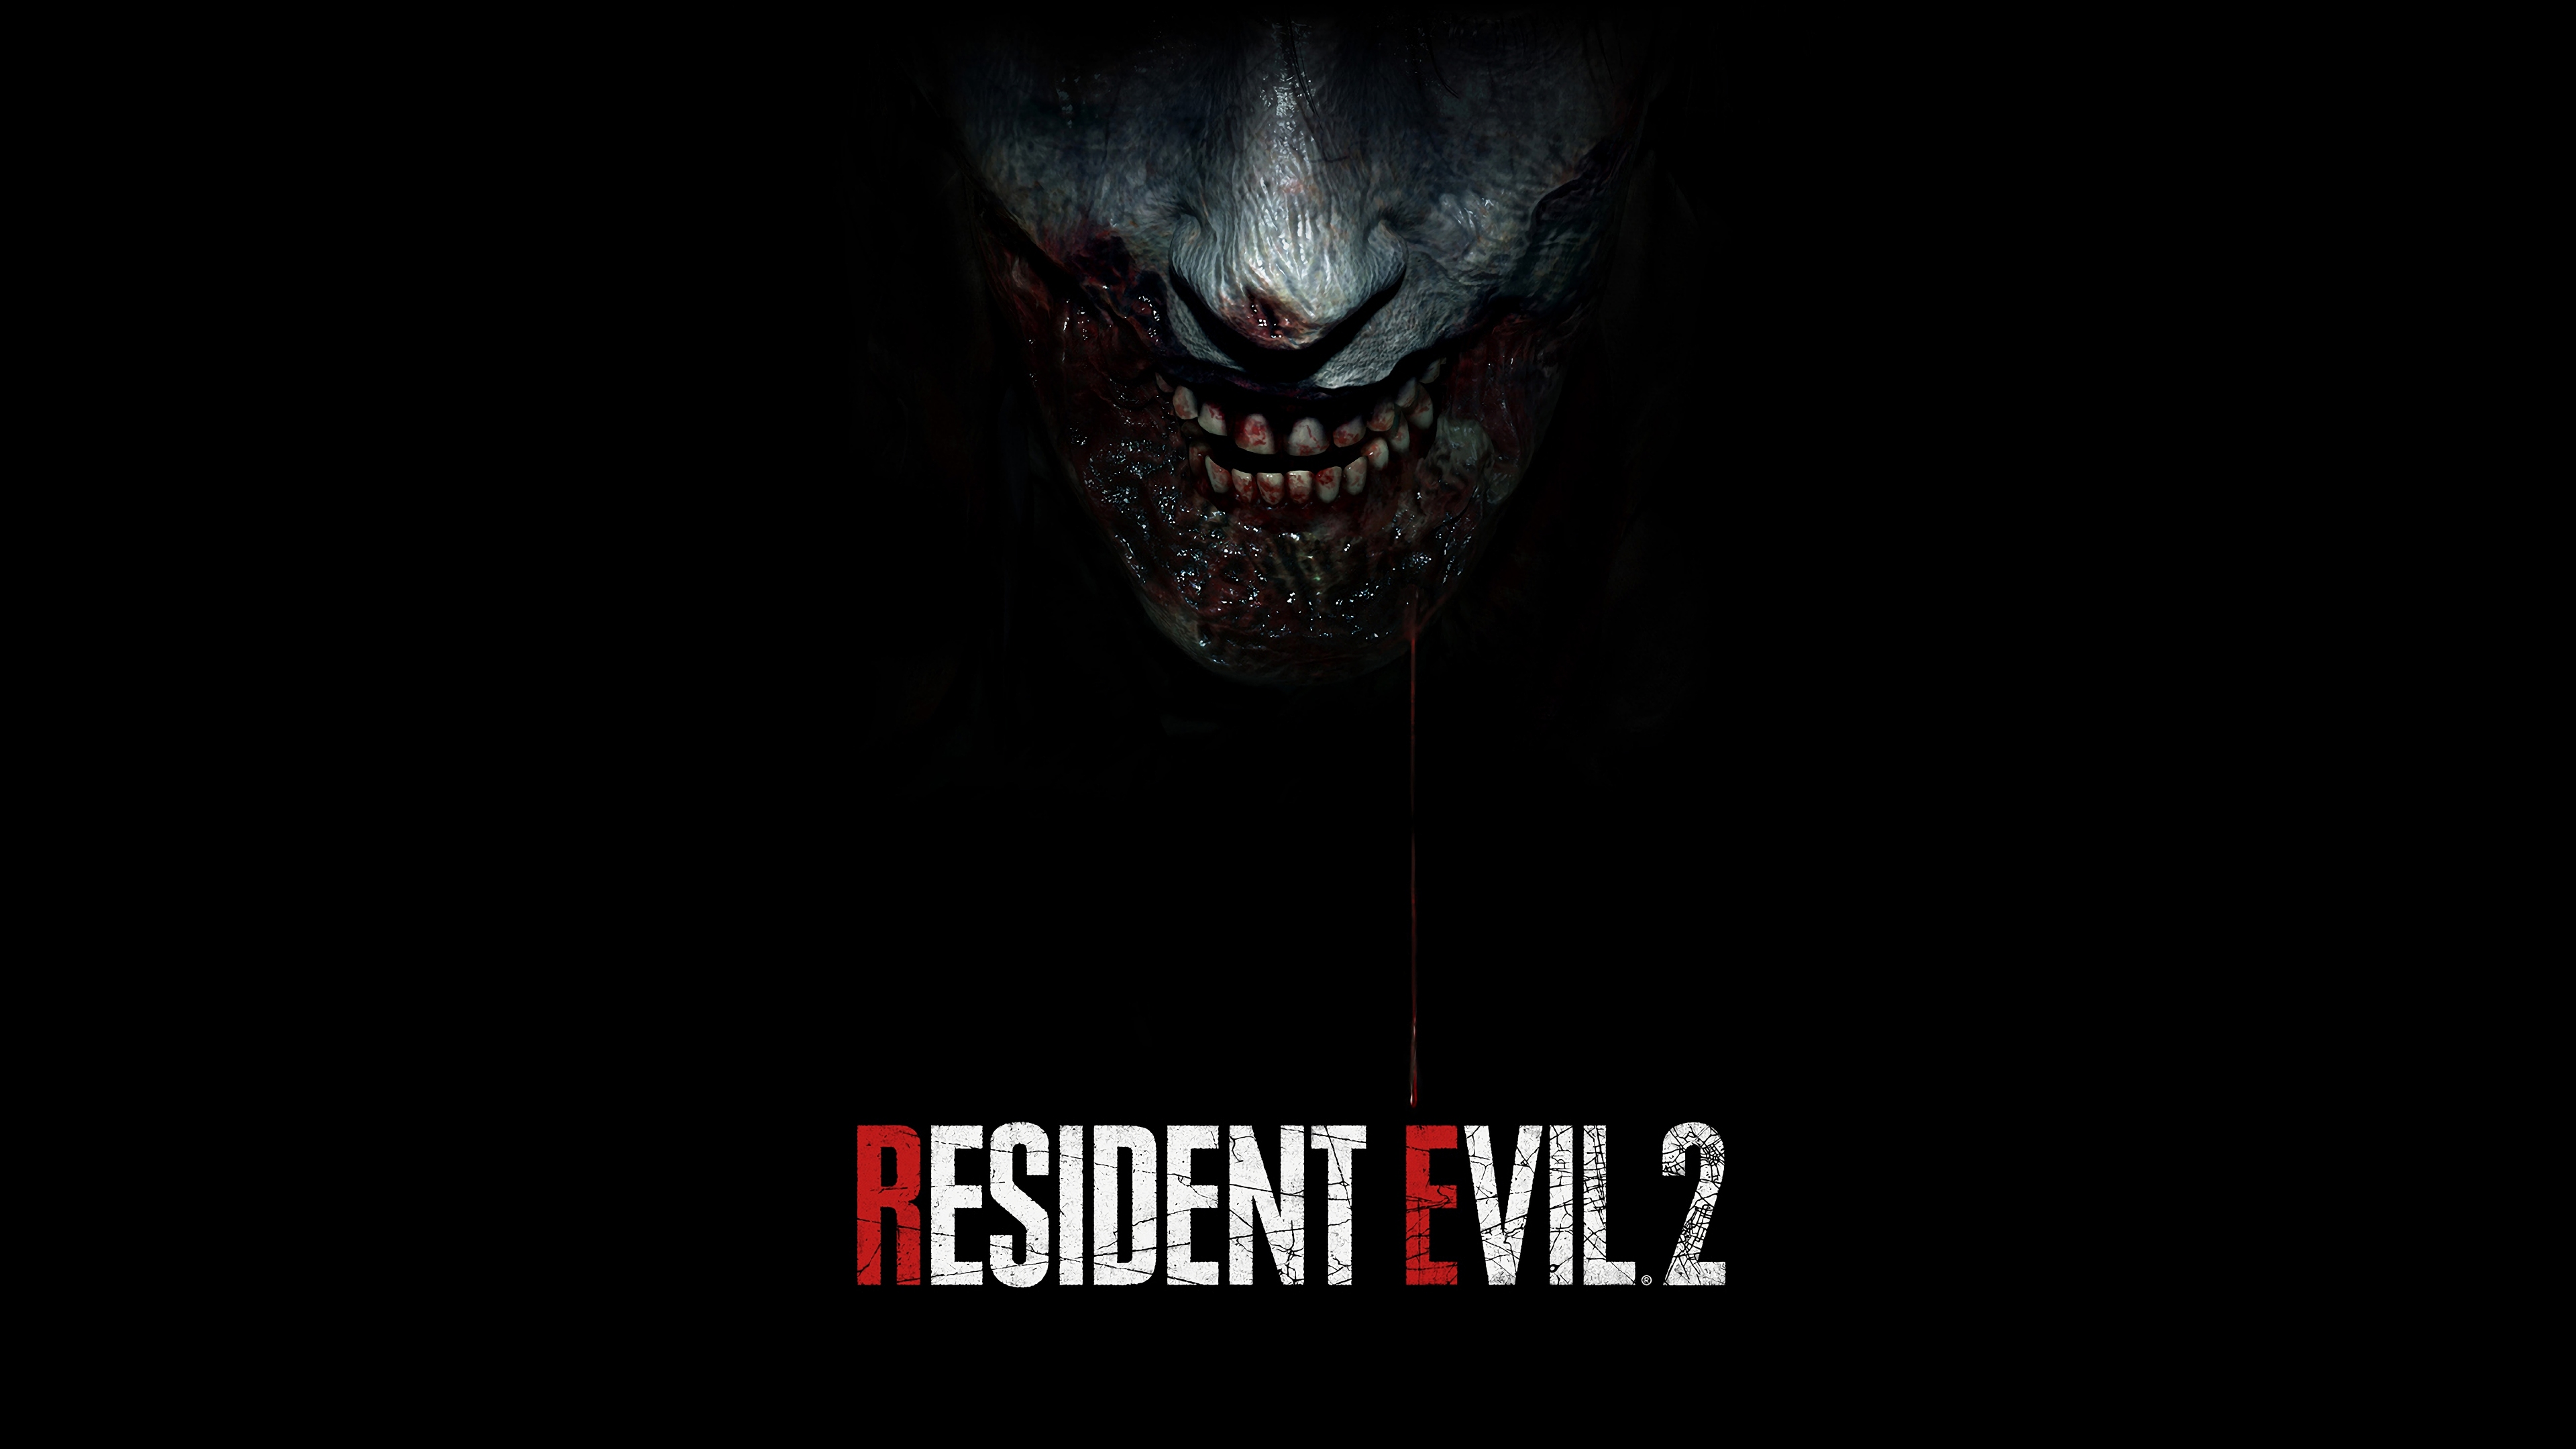 resident evil 2 8k 1537691651 - Resident Evil 2 8k - resident evil 2 wallpapers, hd-wallpapers, games wallpapers, dark wallpapers, blood wallpapers, black wallpapers, 8k wallpapers, 5k wallpapers, 4k-wallpapers, 2019 games wallpapers